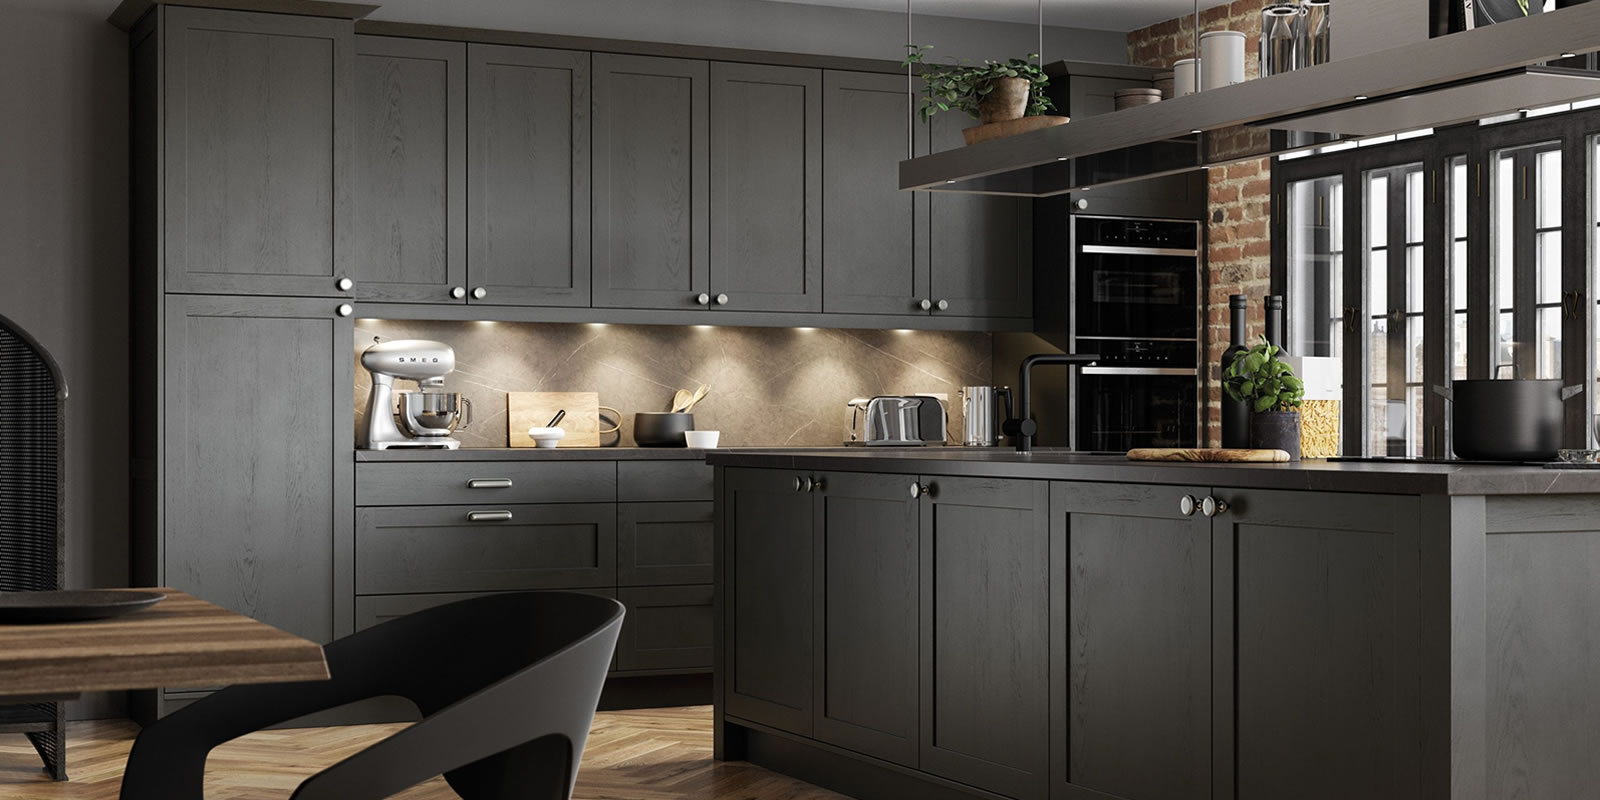 mya bedrooms and kitchens Wolverhampton Aldana-Graphite slider background image